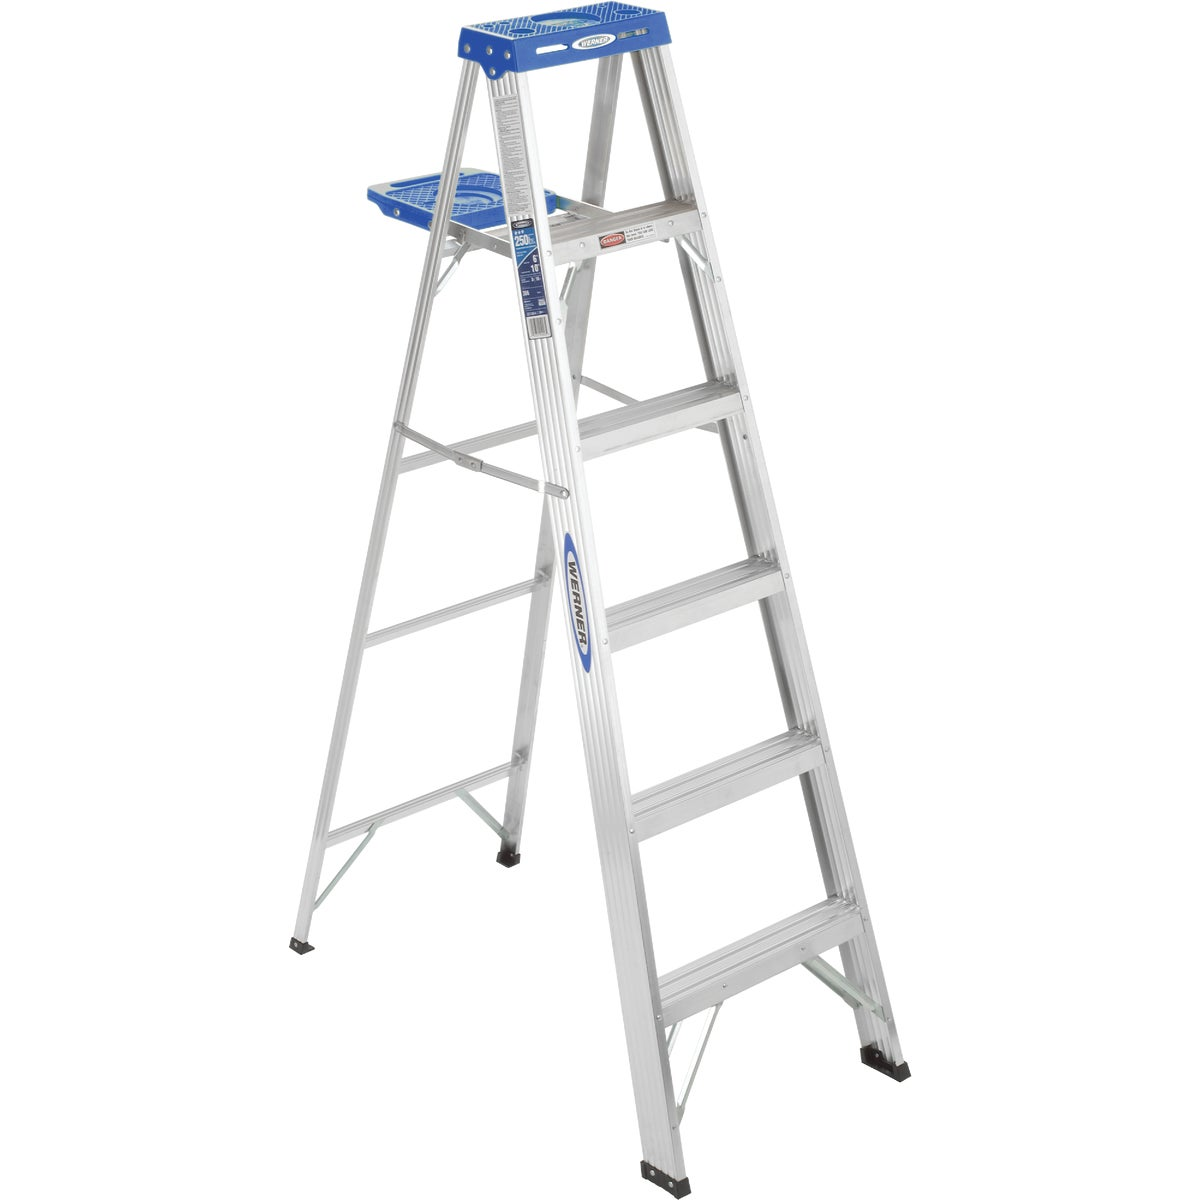 T-1 6' ALUM STEPLADDER - 366 by Werner Co